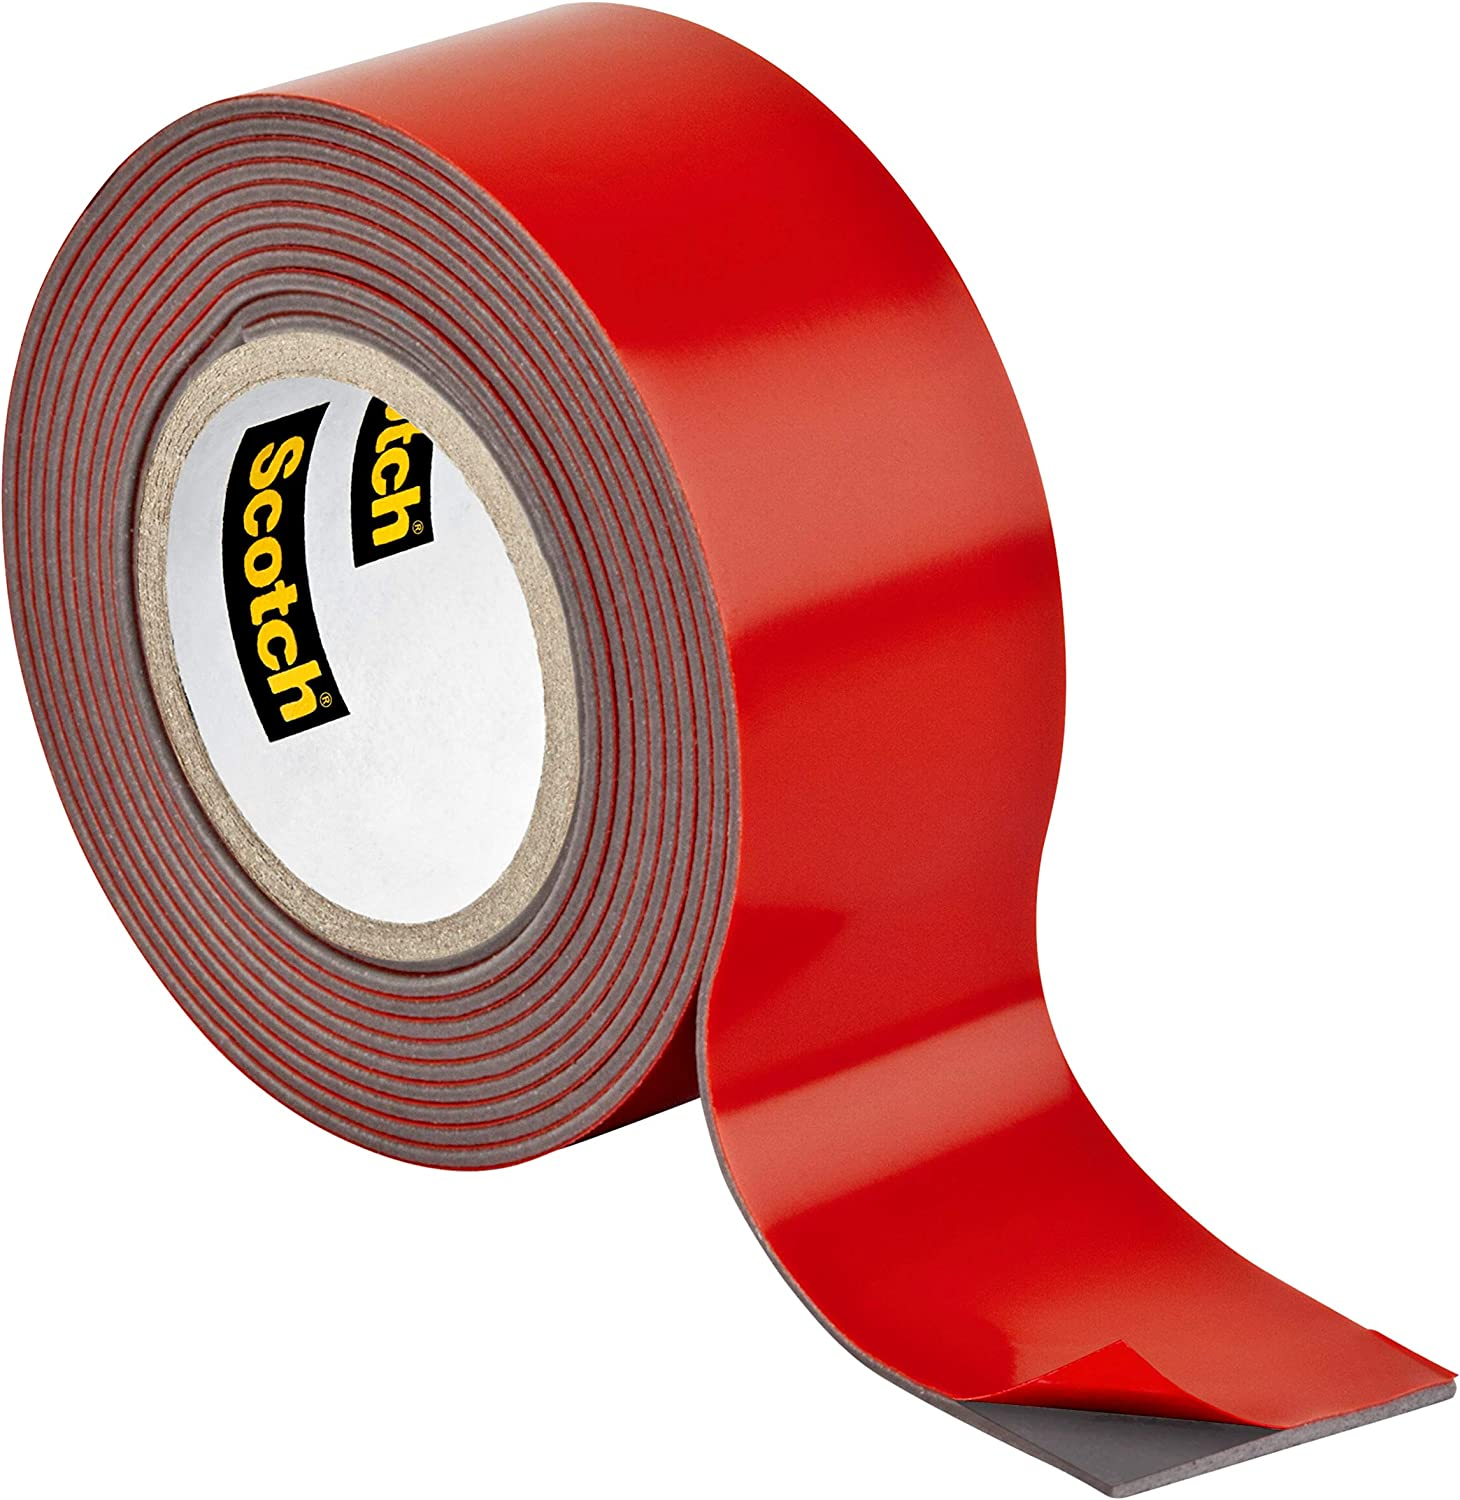 Scotch Outdoor Mounting Tape, 1-inch x 60-inches, Holds up to 15 pounds, Gray, 1-Roll (411H) - -